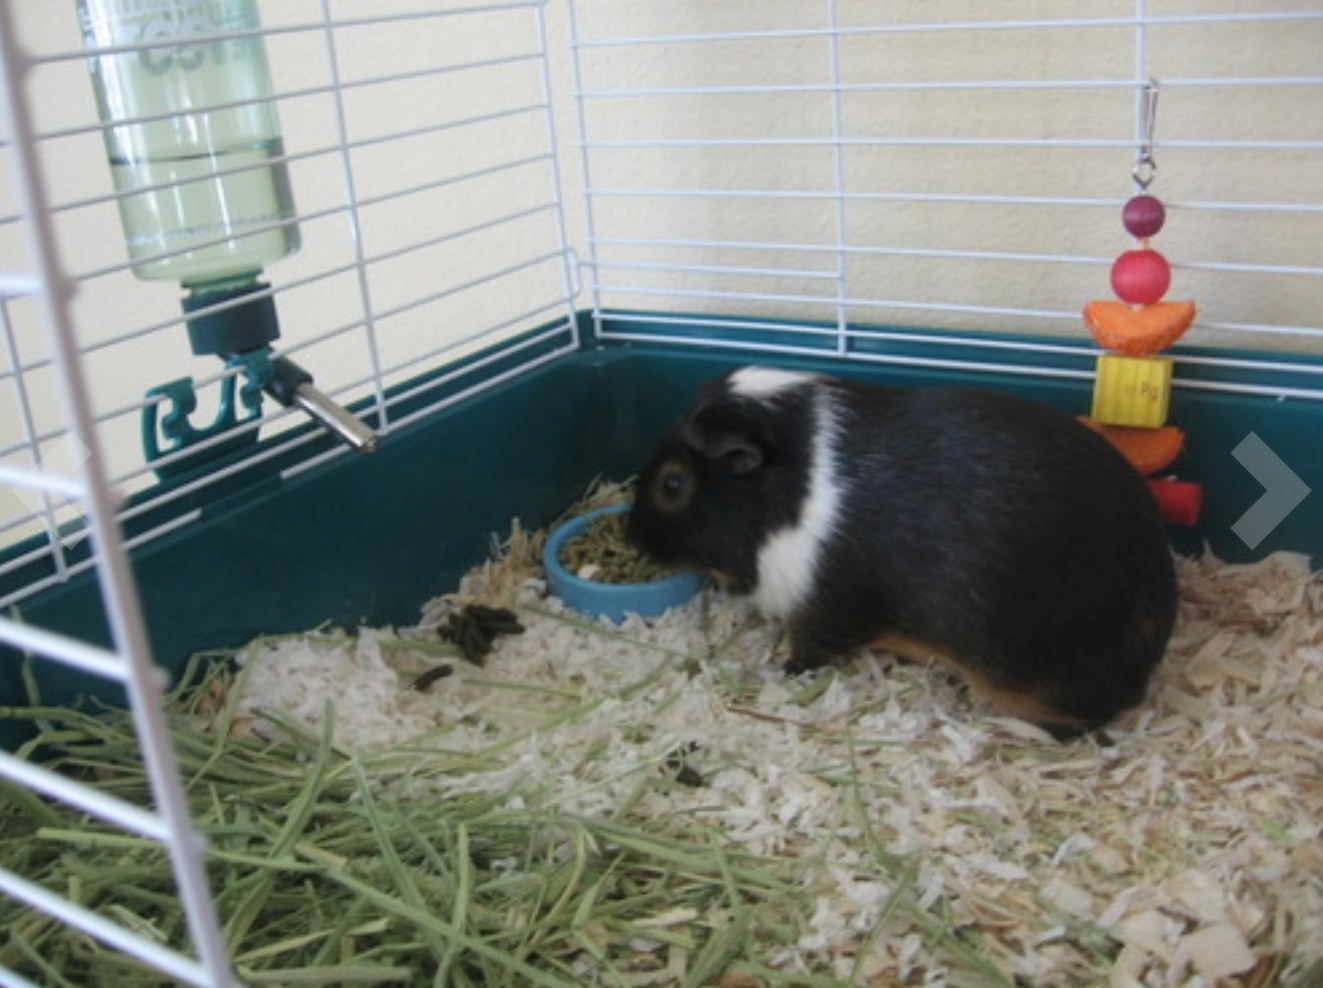 A black and white guinea pig eating the food out of a small bowl in its cage